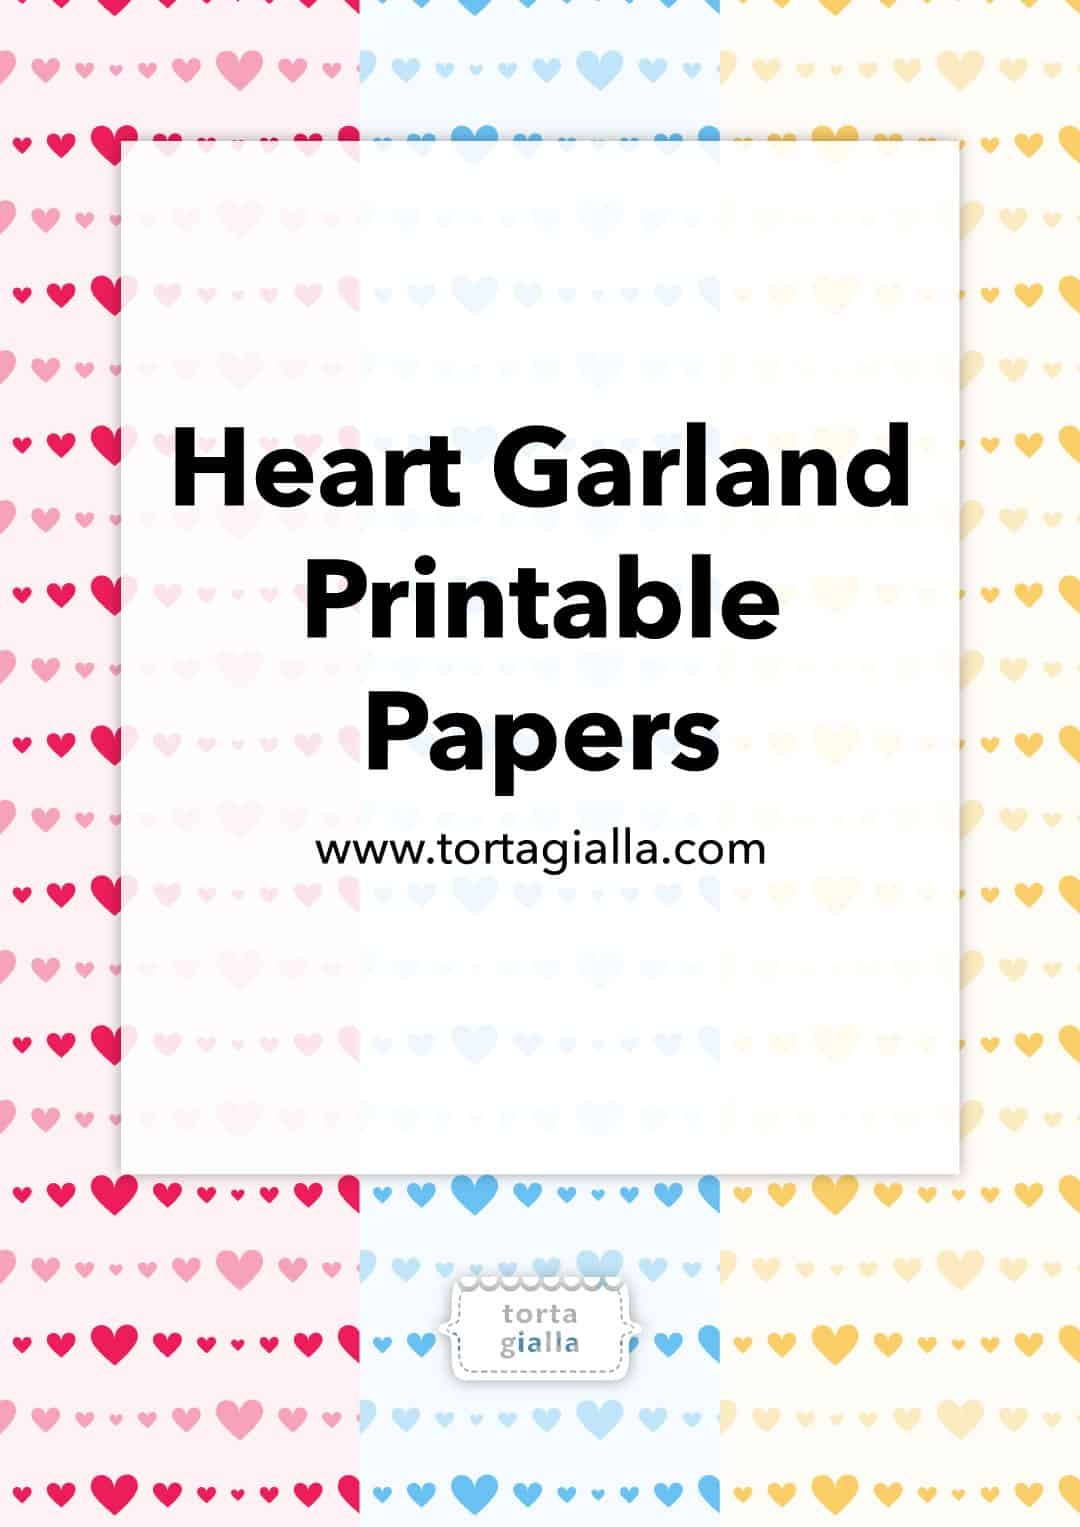 Heart Garland Printables